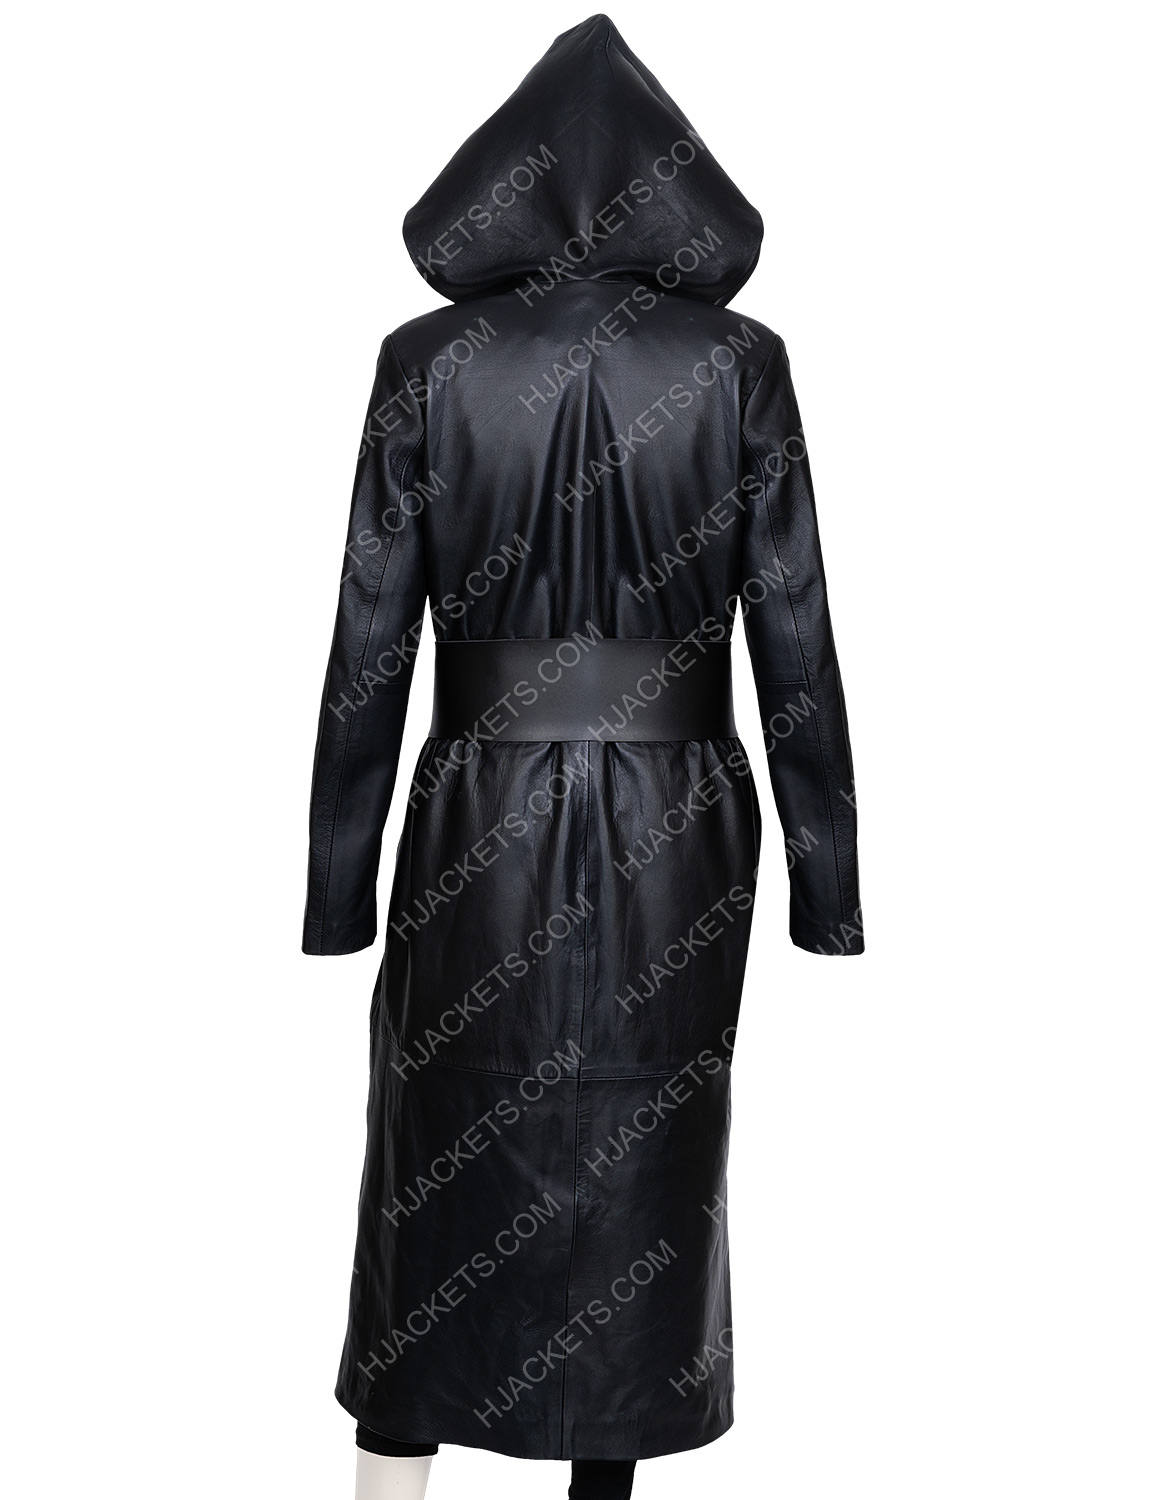 Angela Abar Watchmen Long Coat Regina King Hooded Coat